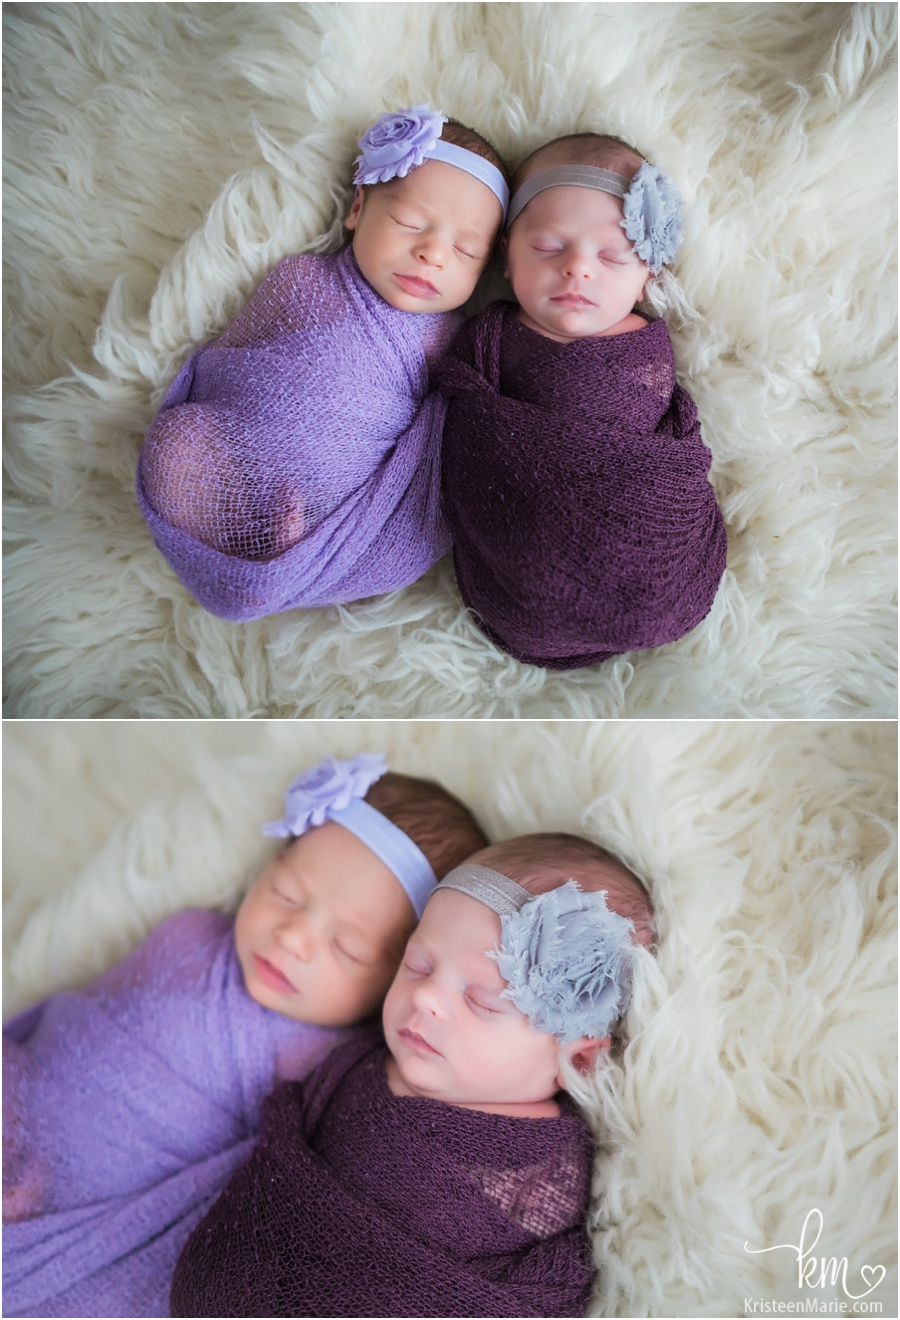 Sleeping newborn girls